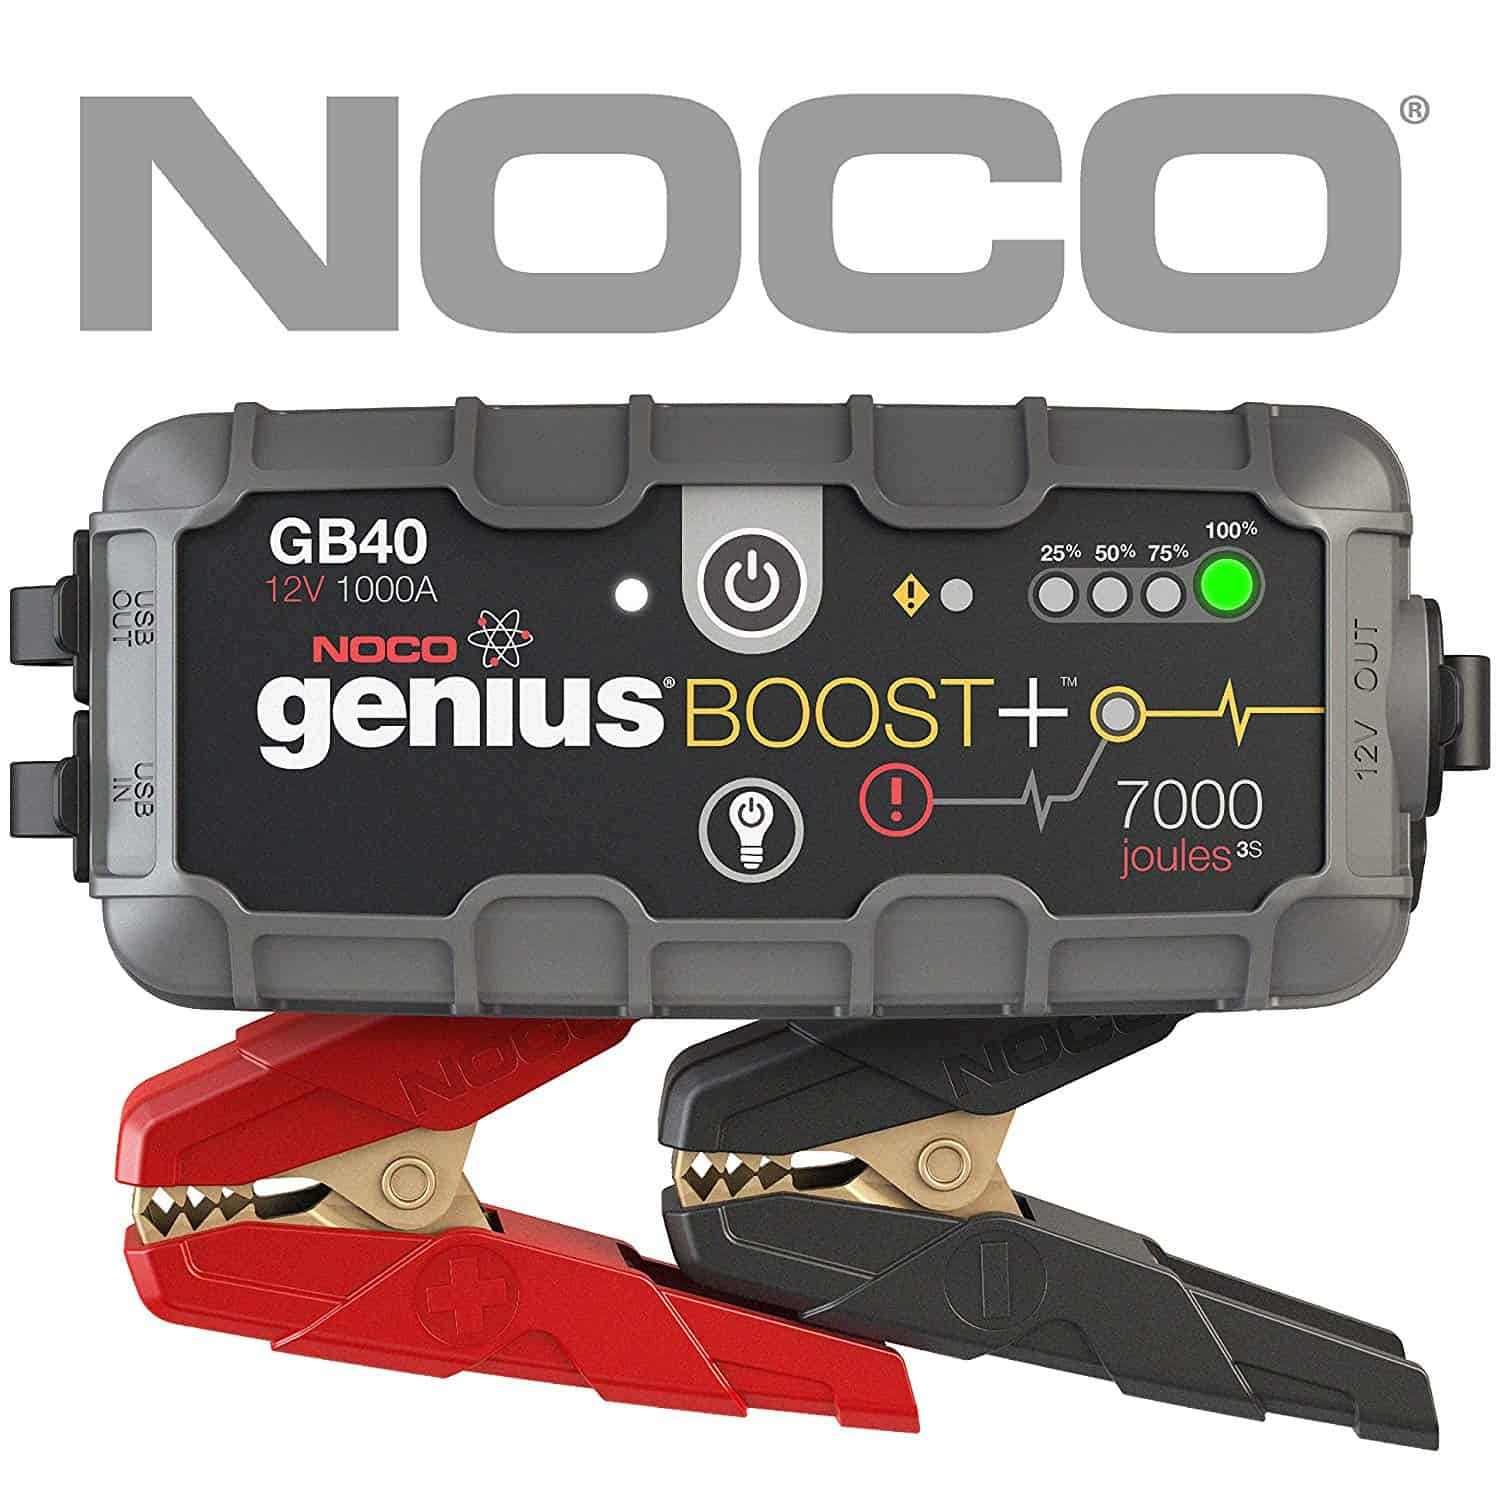 NOCO 2020 Holiday Gift Guide